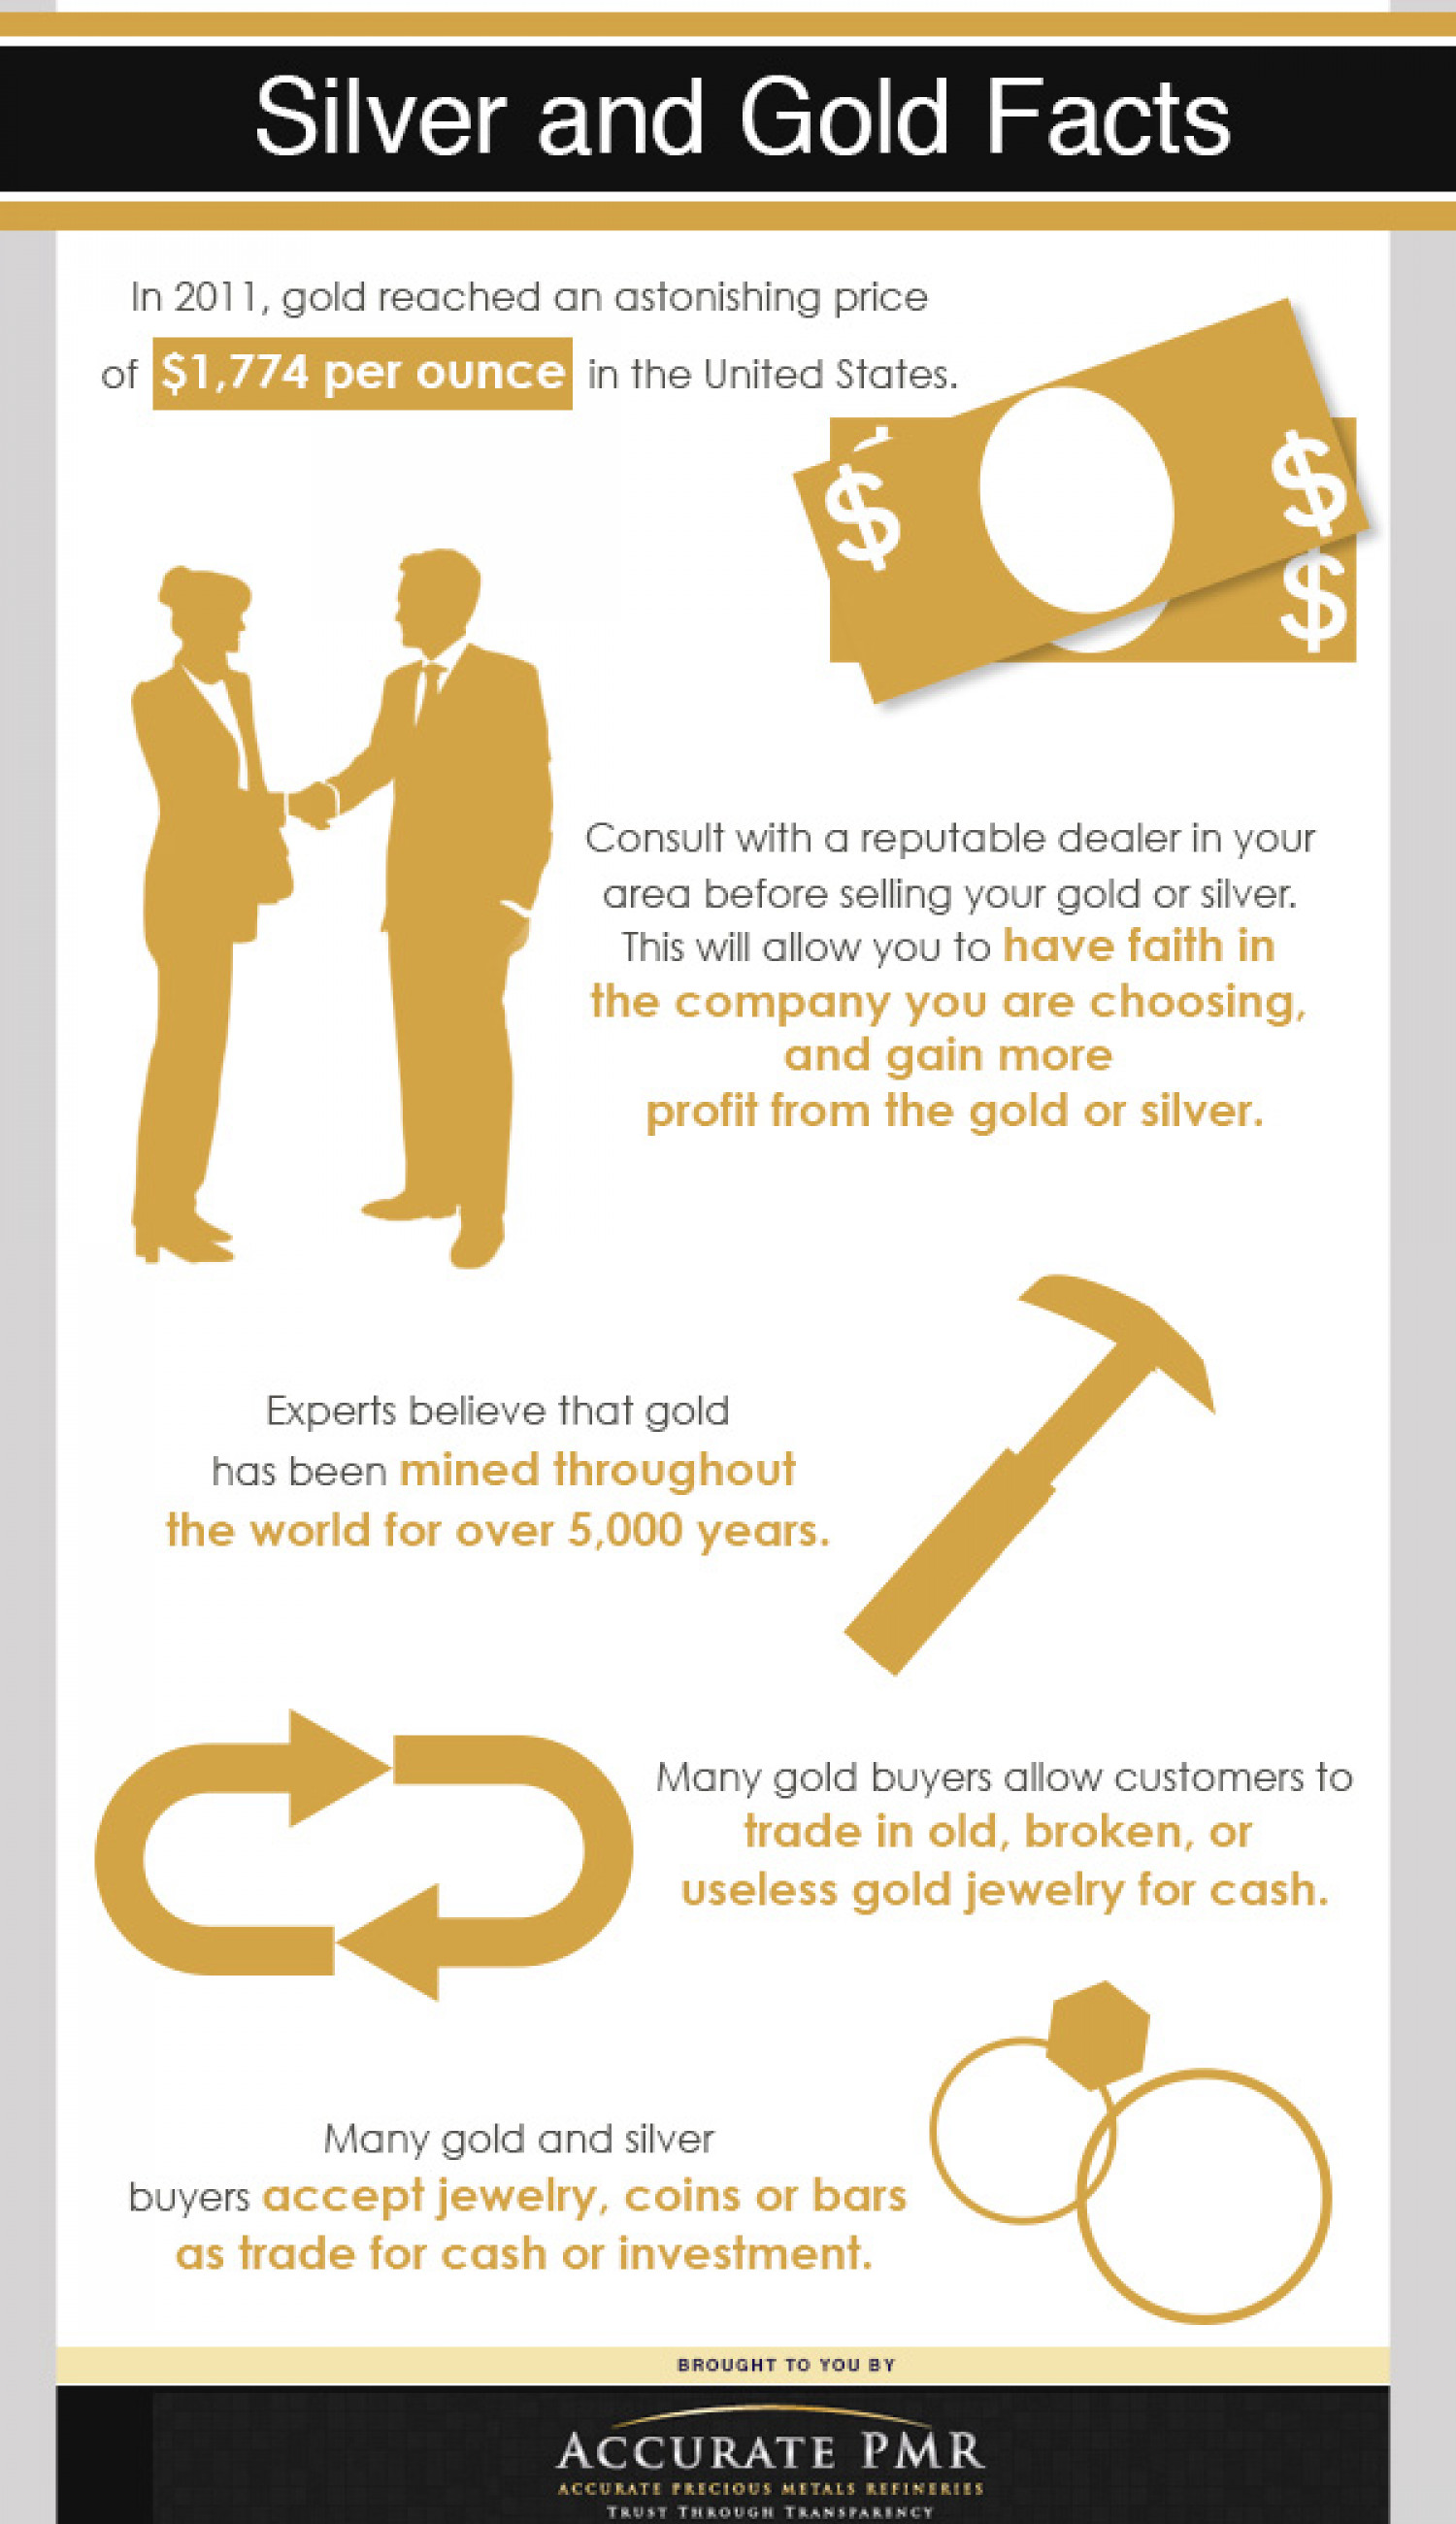 Silver and Gold Facts Infographic